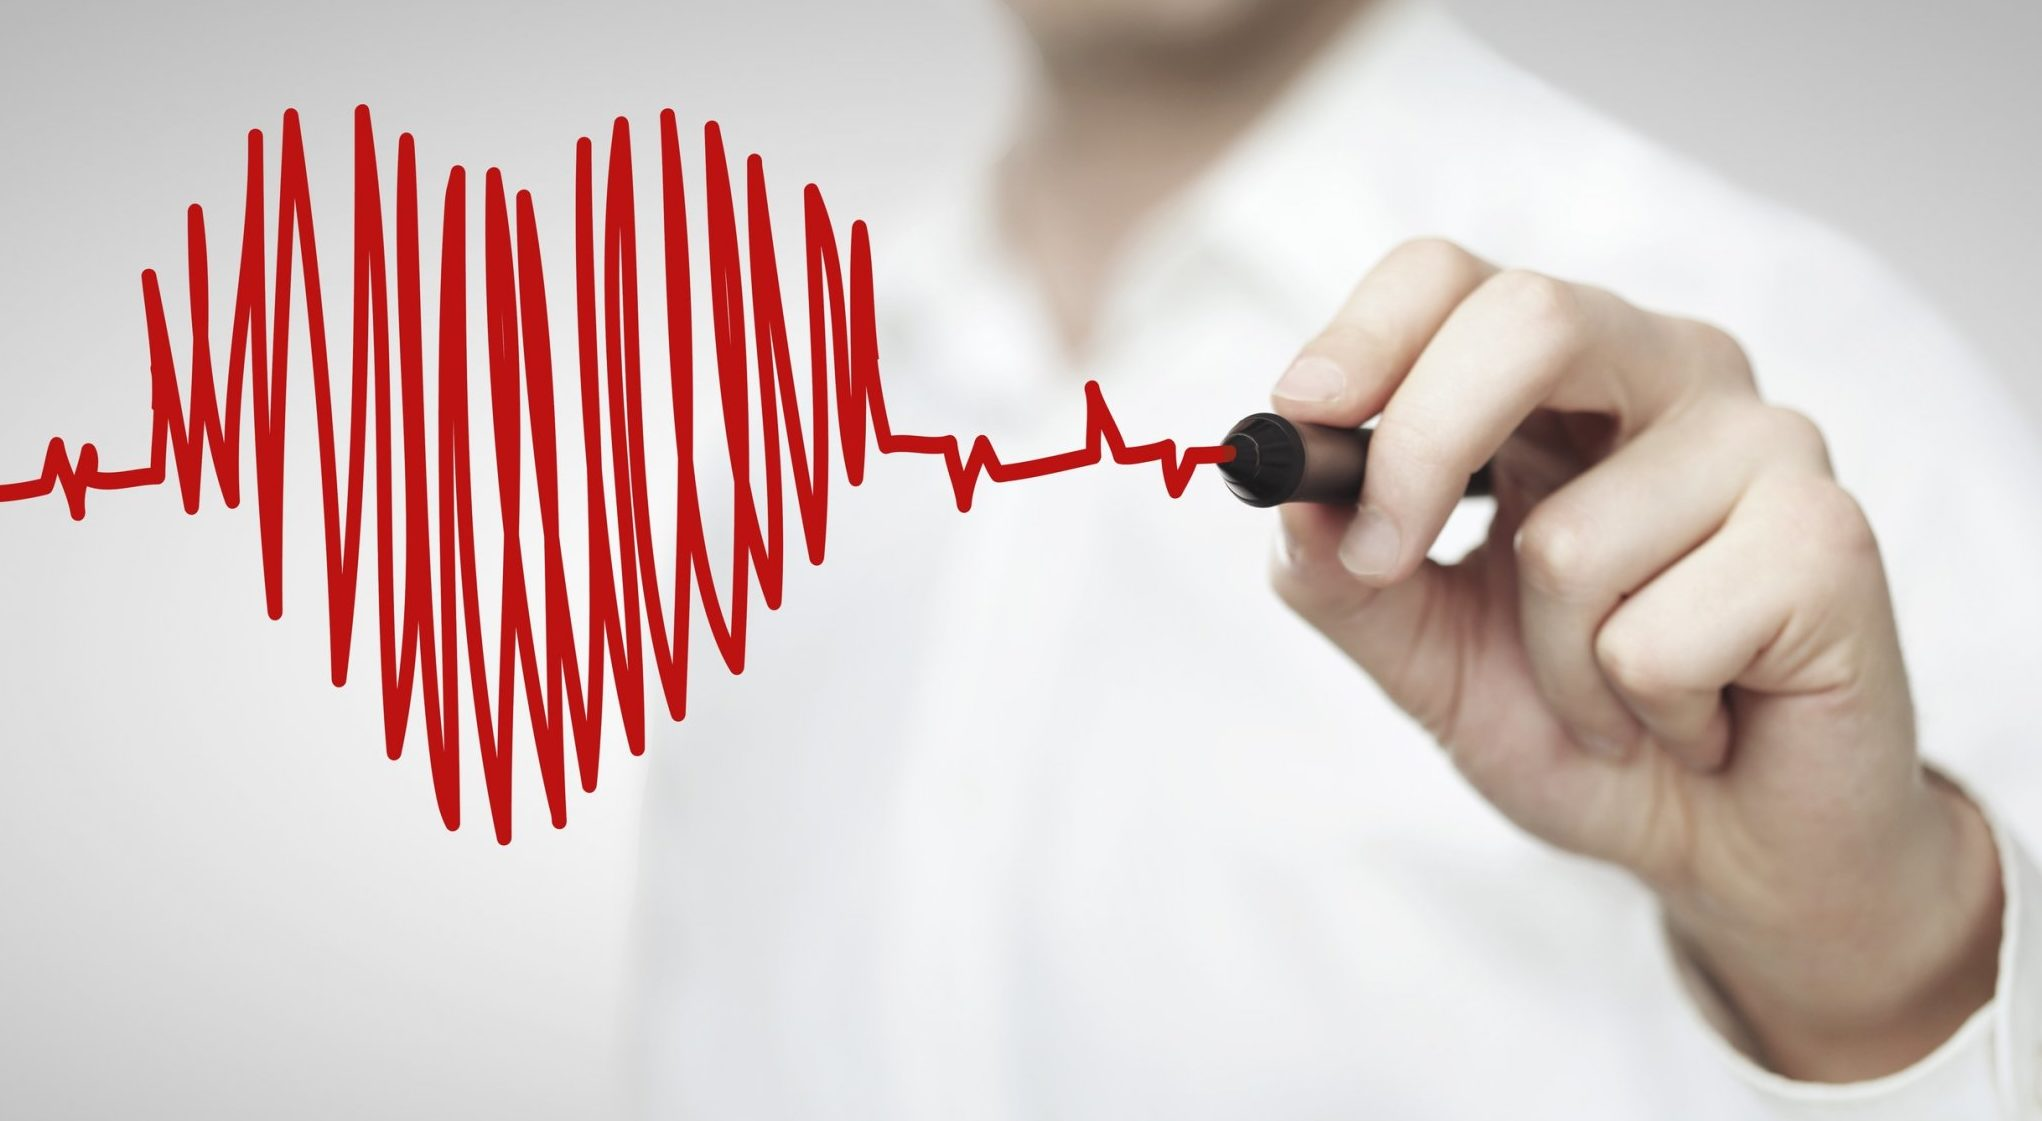 coq10-supplementation-may-support-heart-health-in-individuals-born-at-a-low-birth-weight